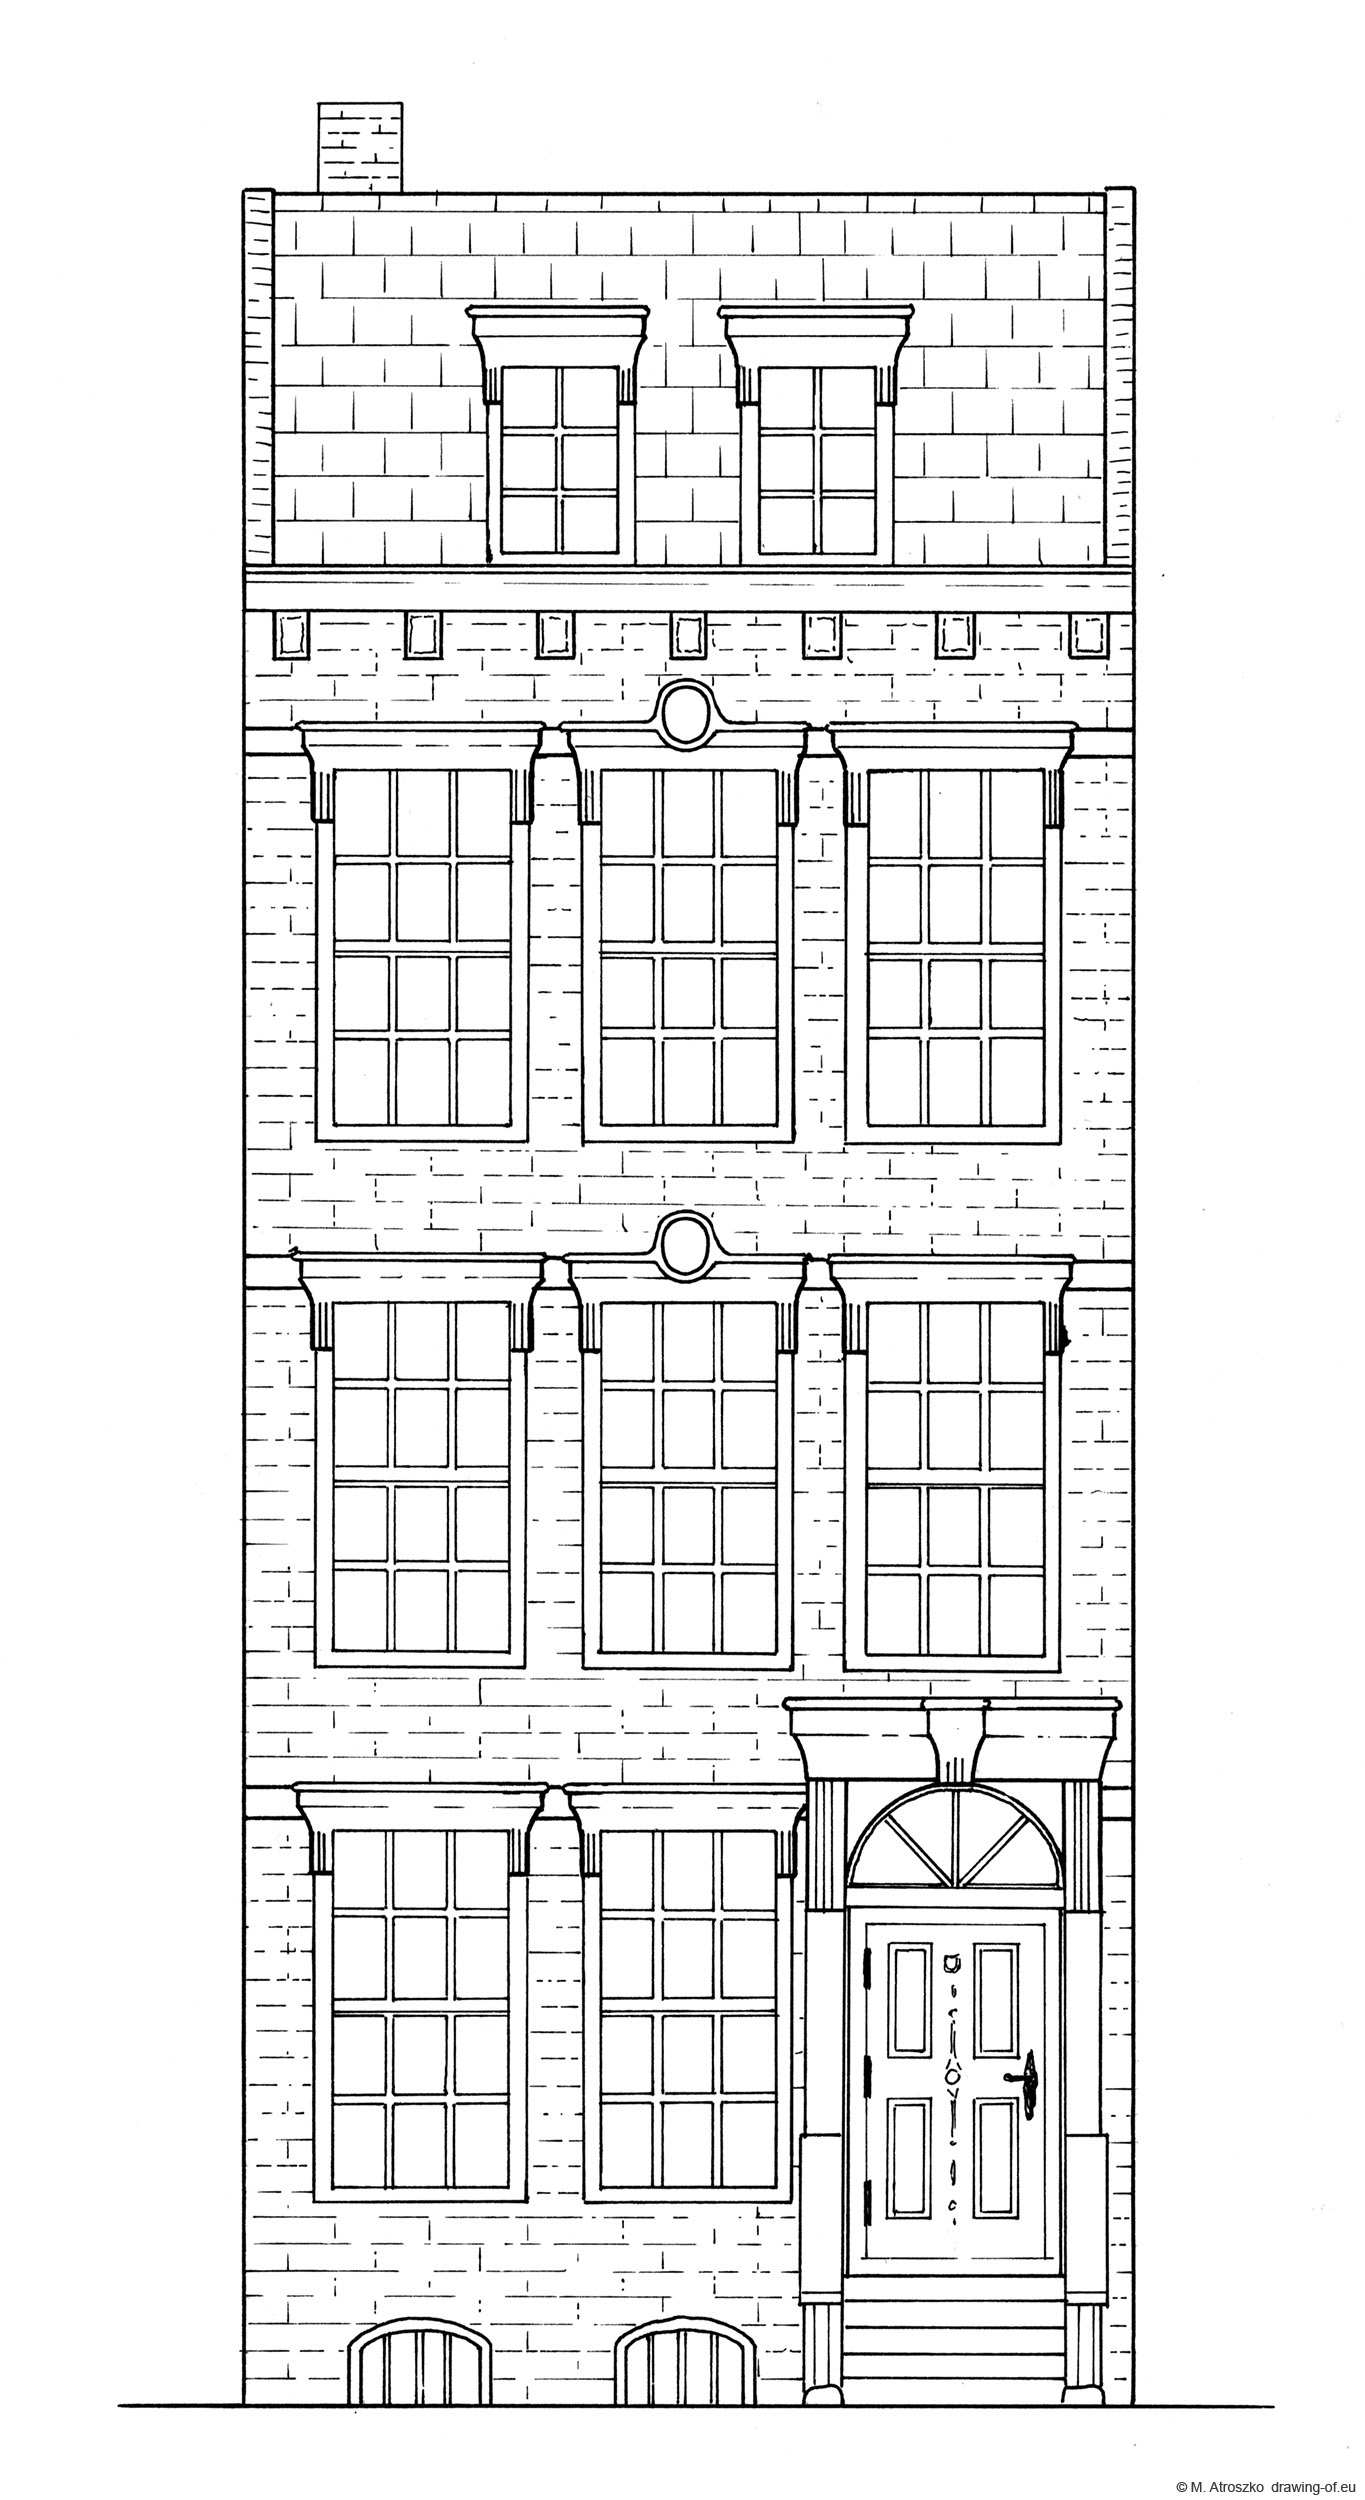 Drawing of row building